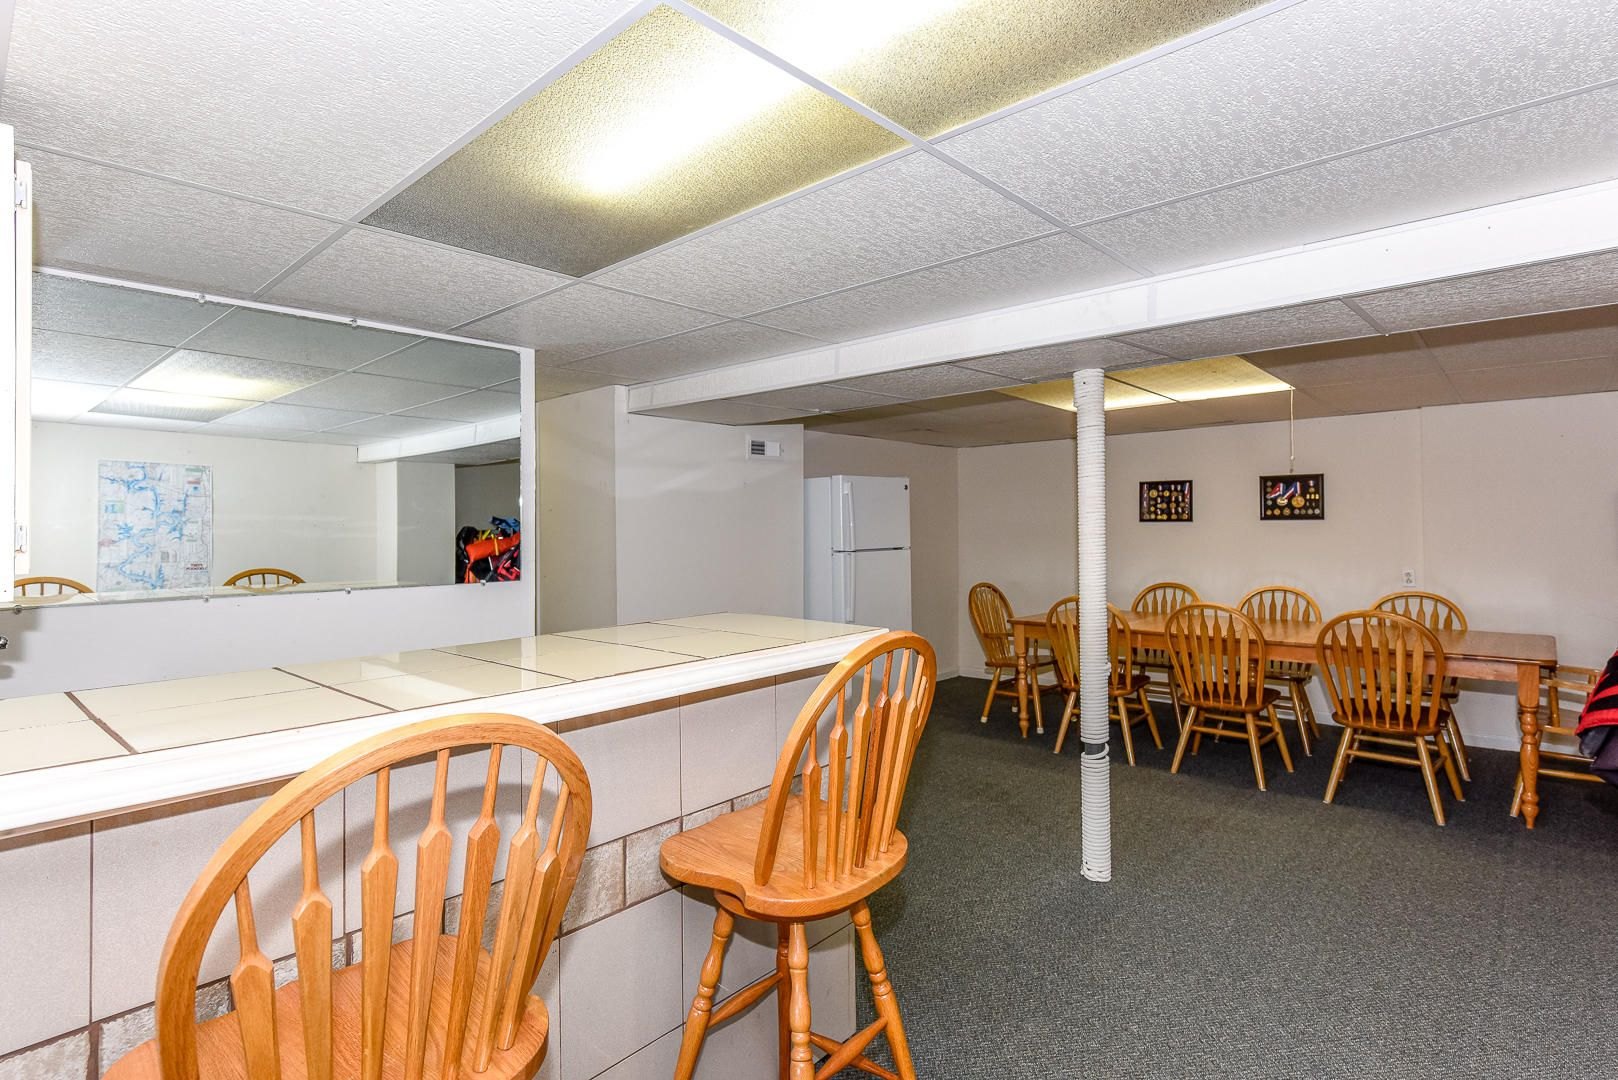 Basement kitchen/dining area